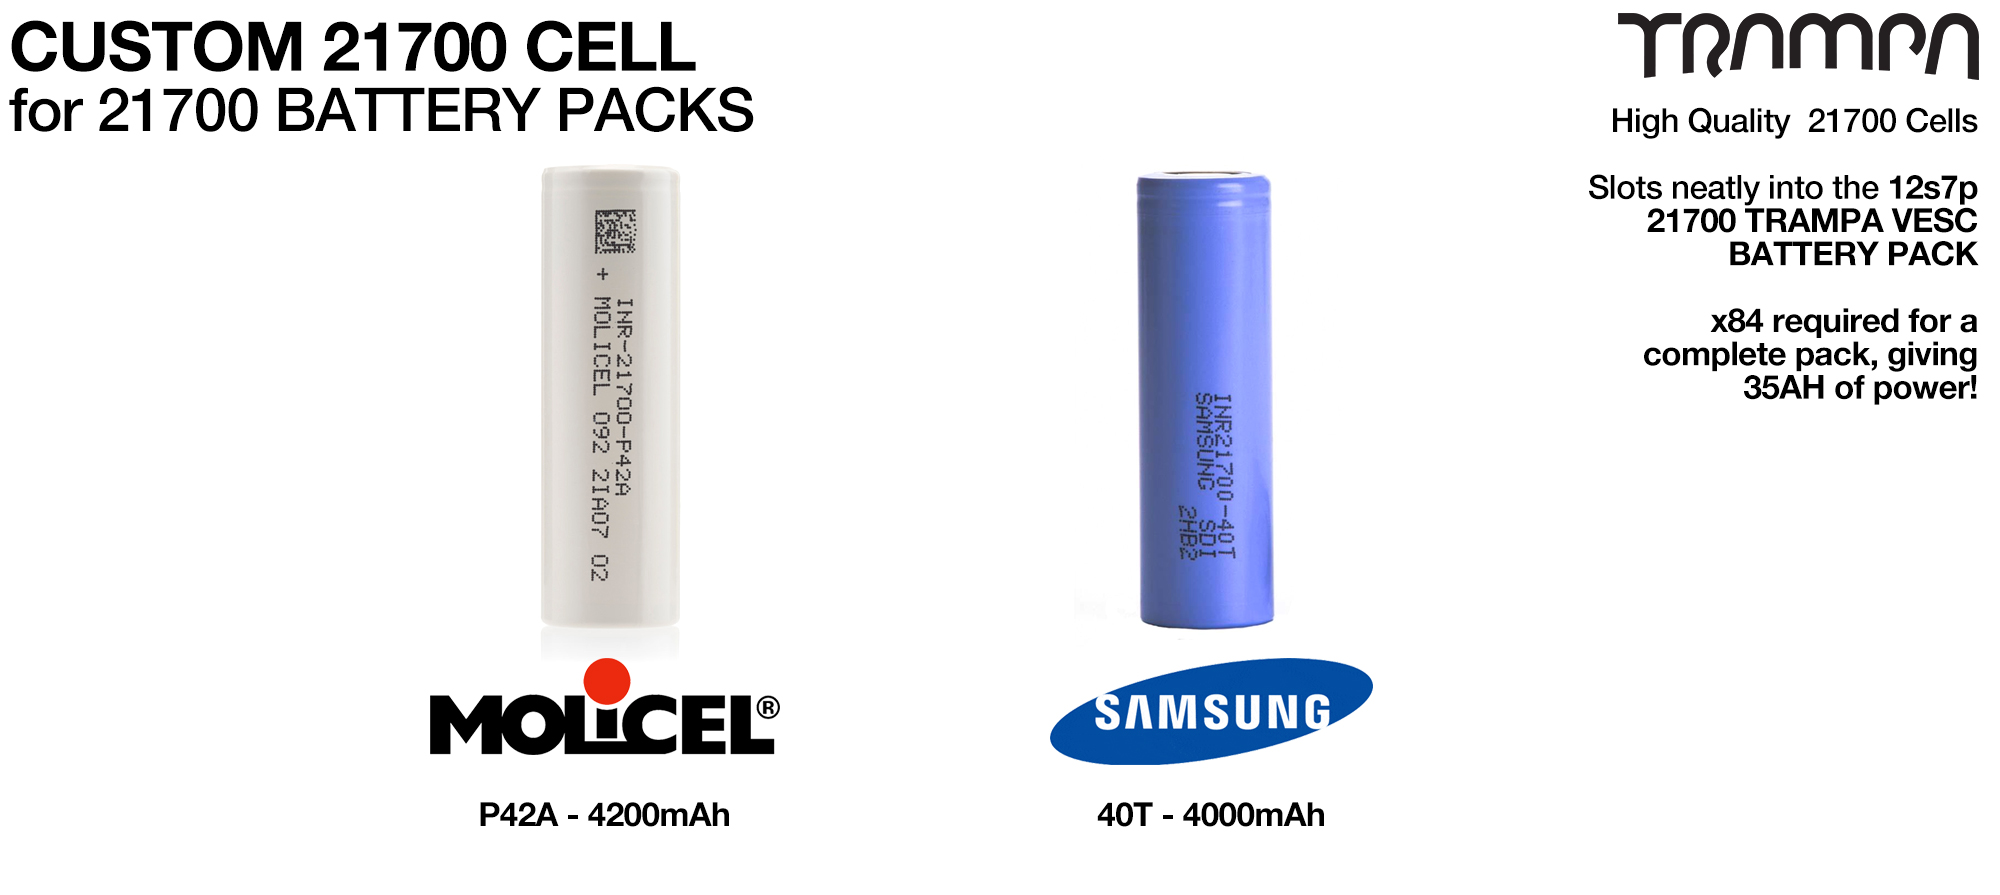 21700 Cells Lion NCA Batteries 5000mAh - SOLD TO UK CUSTOMERS ONLY